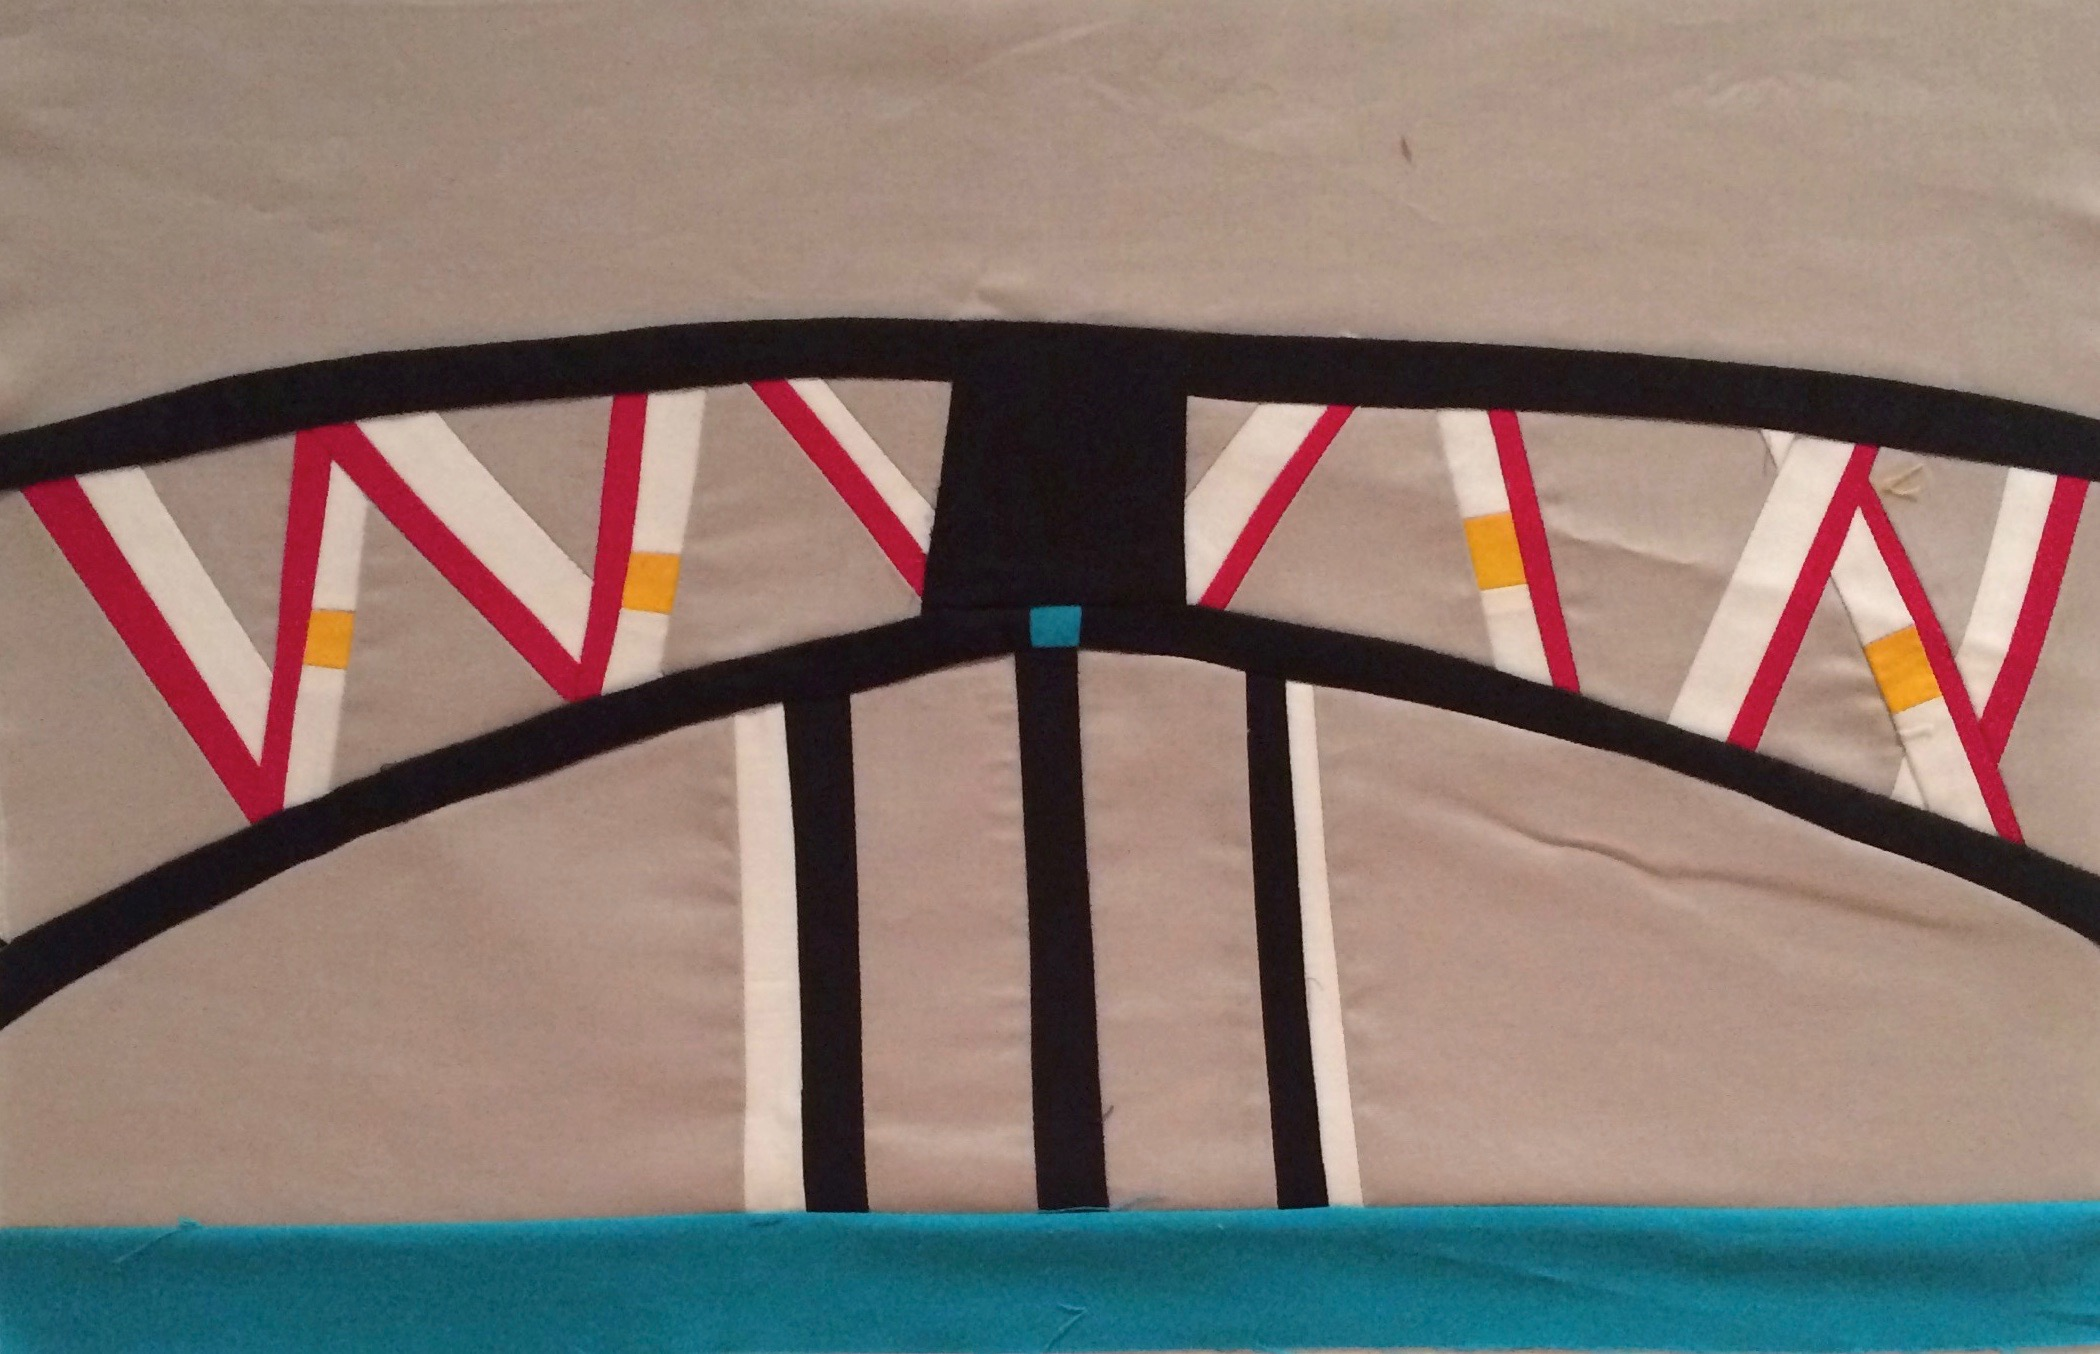 Mary's abstracted bridge